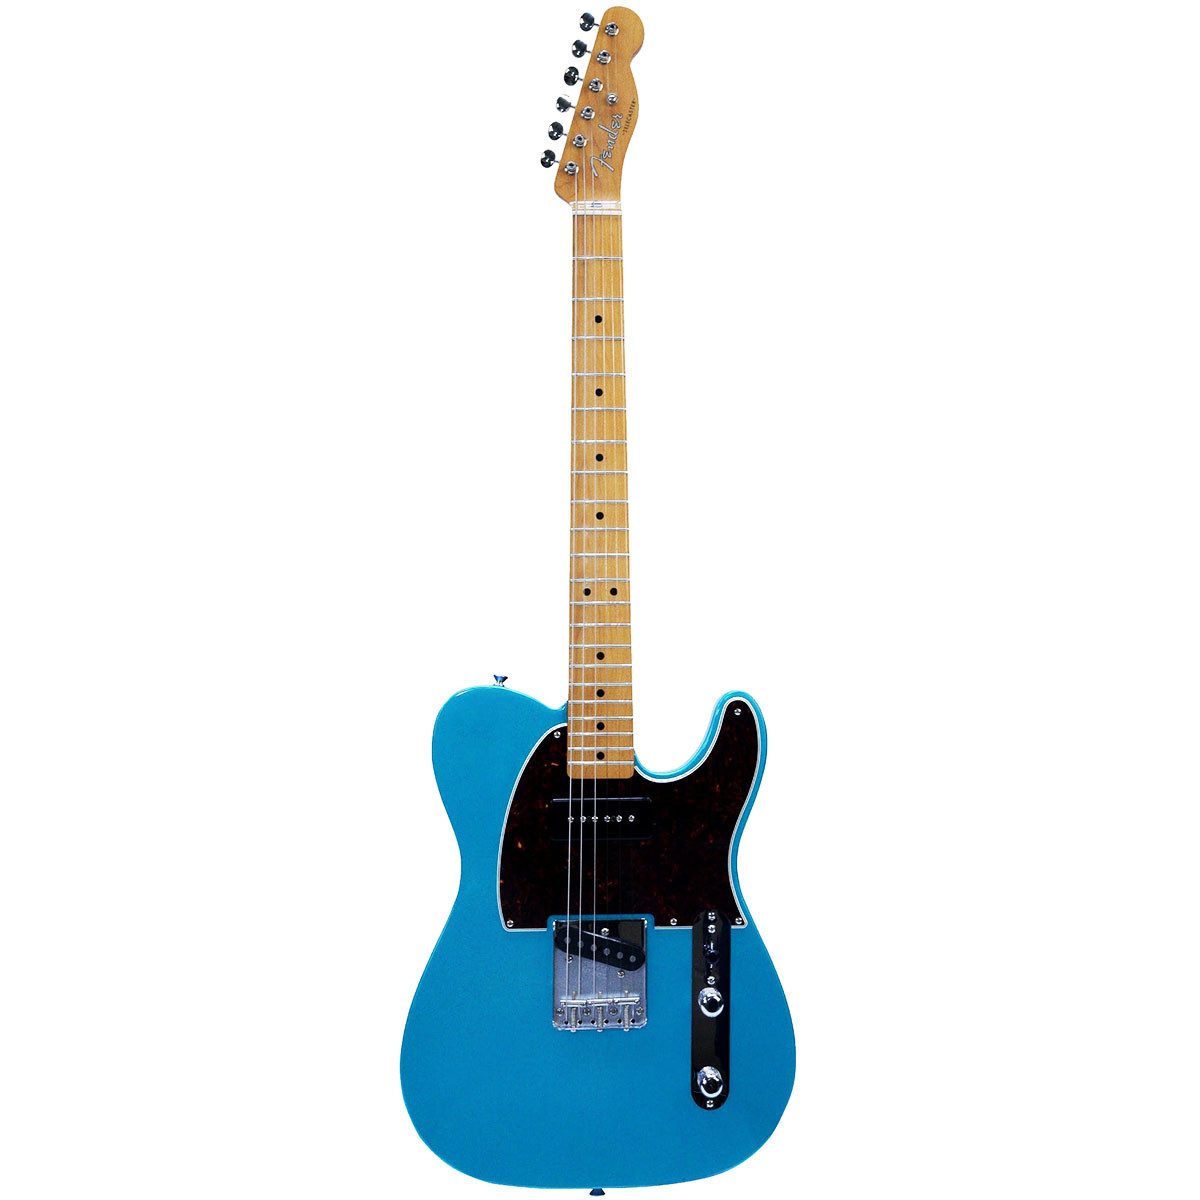 FENDER FSR LTD CLASSIC SERIES '50S TELECASTER MN LAKE PLACID BLUE